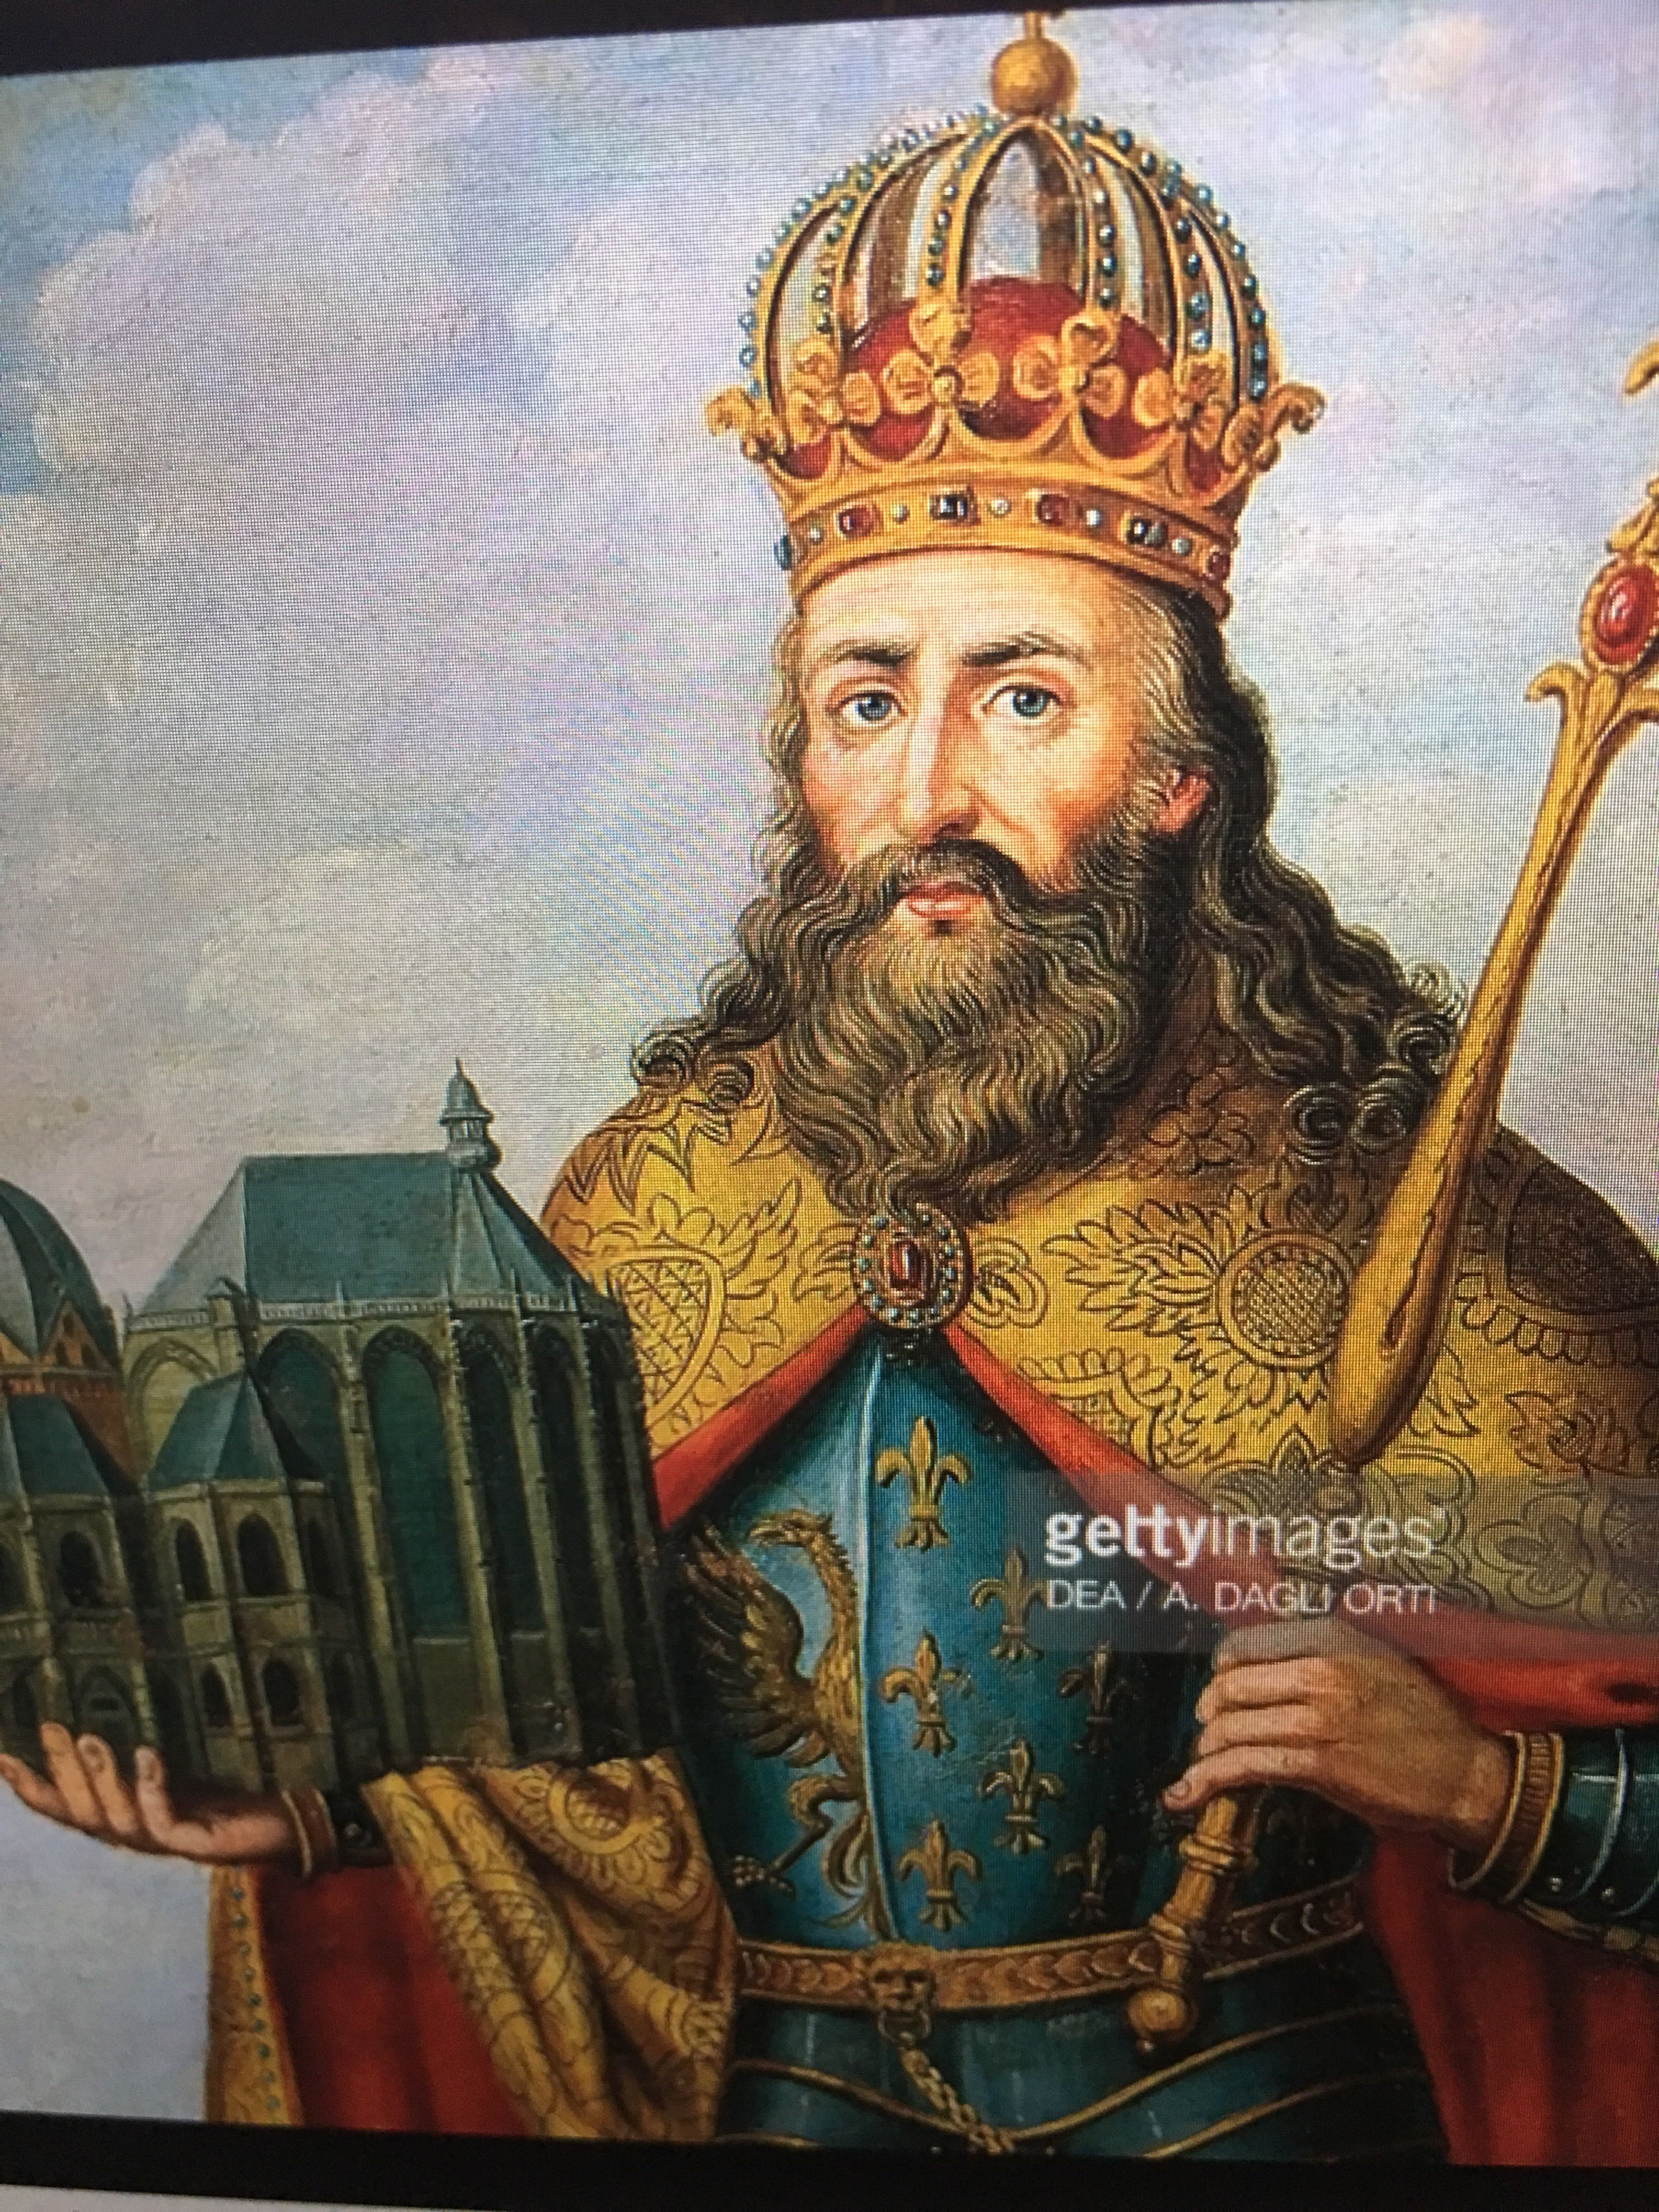 charlemagne?s army